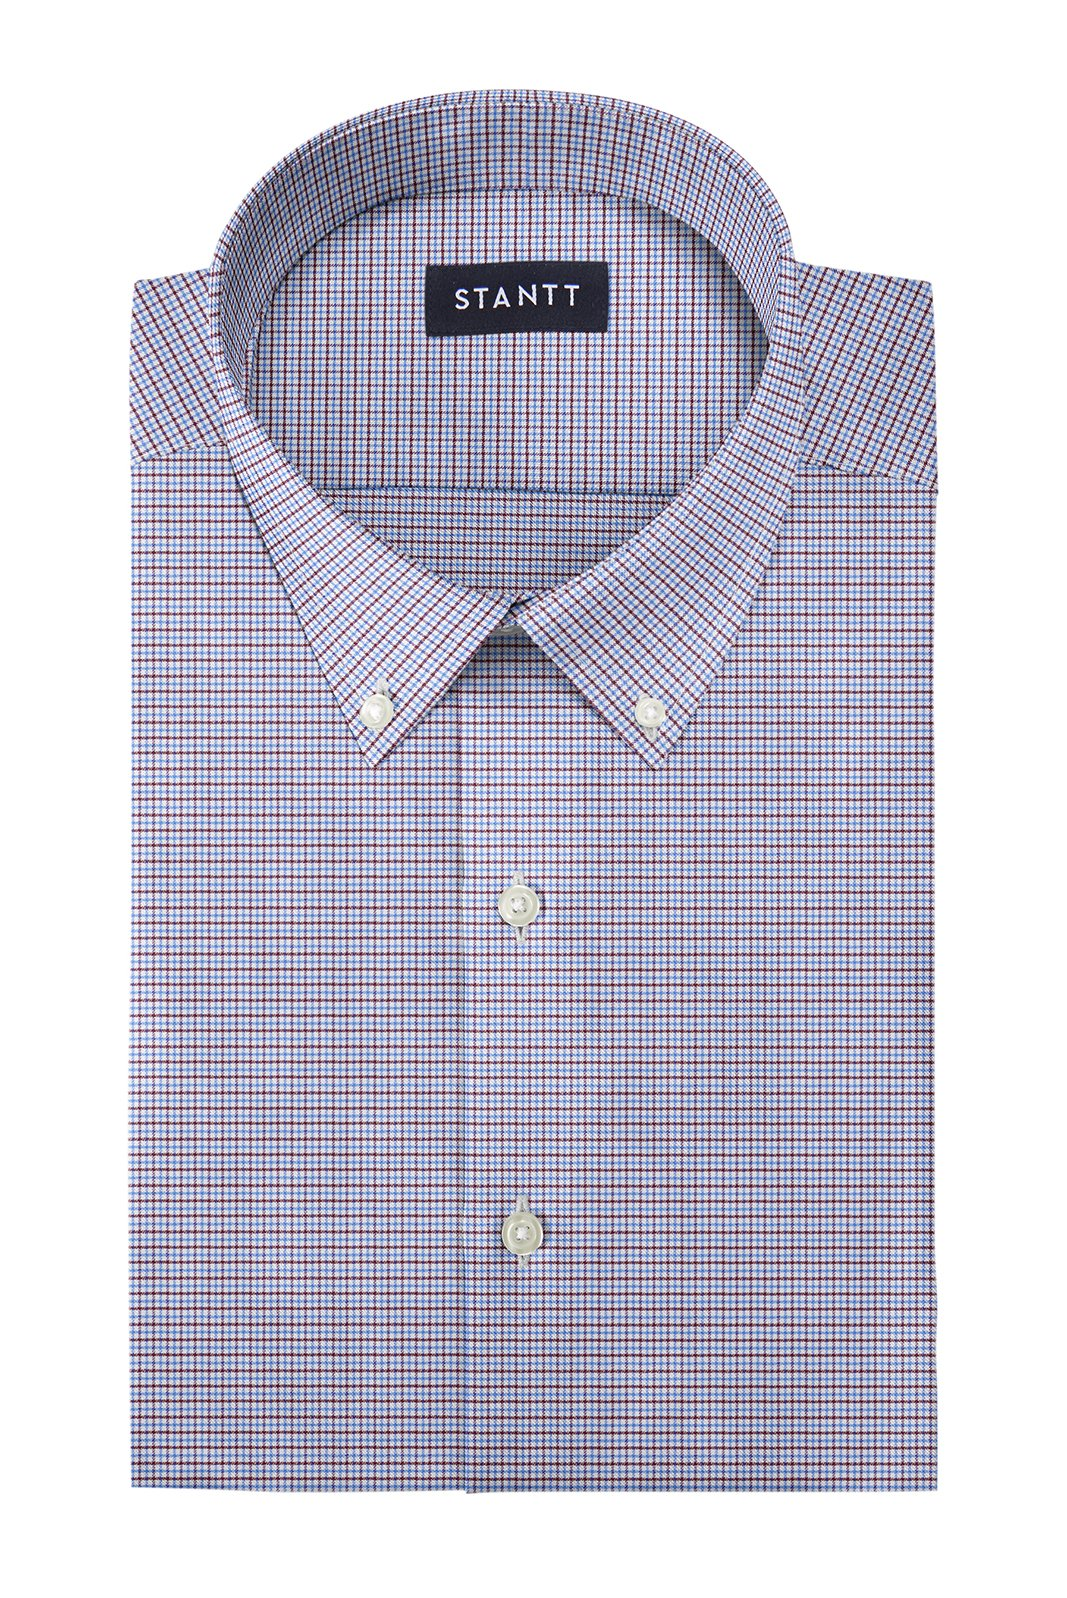 Performance Blue and Brown Mini Tattersall: Button-Down Collar, Barrel Cuff